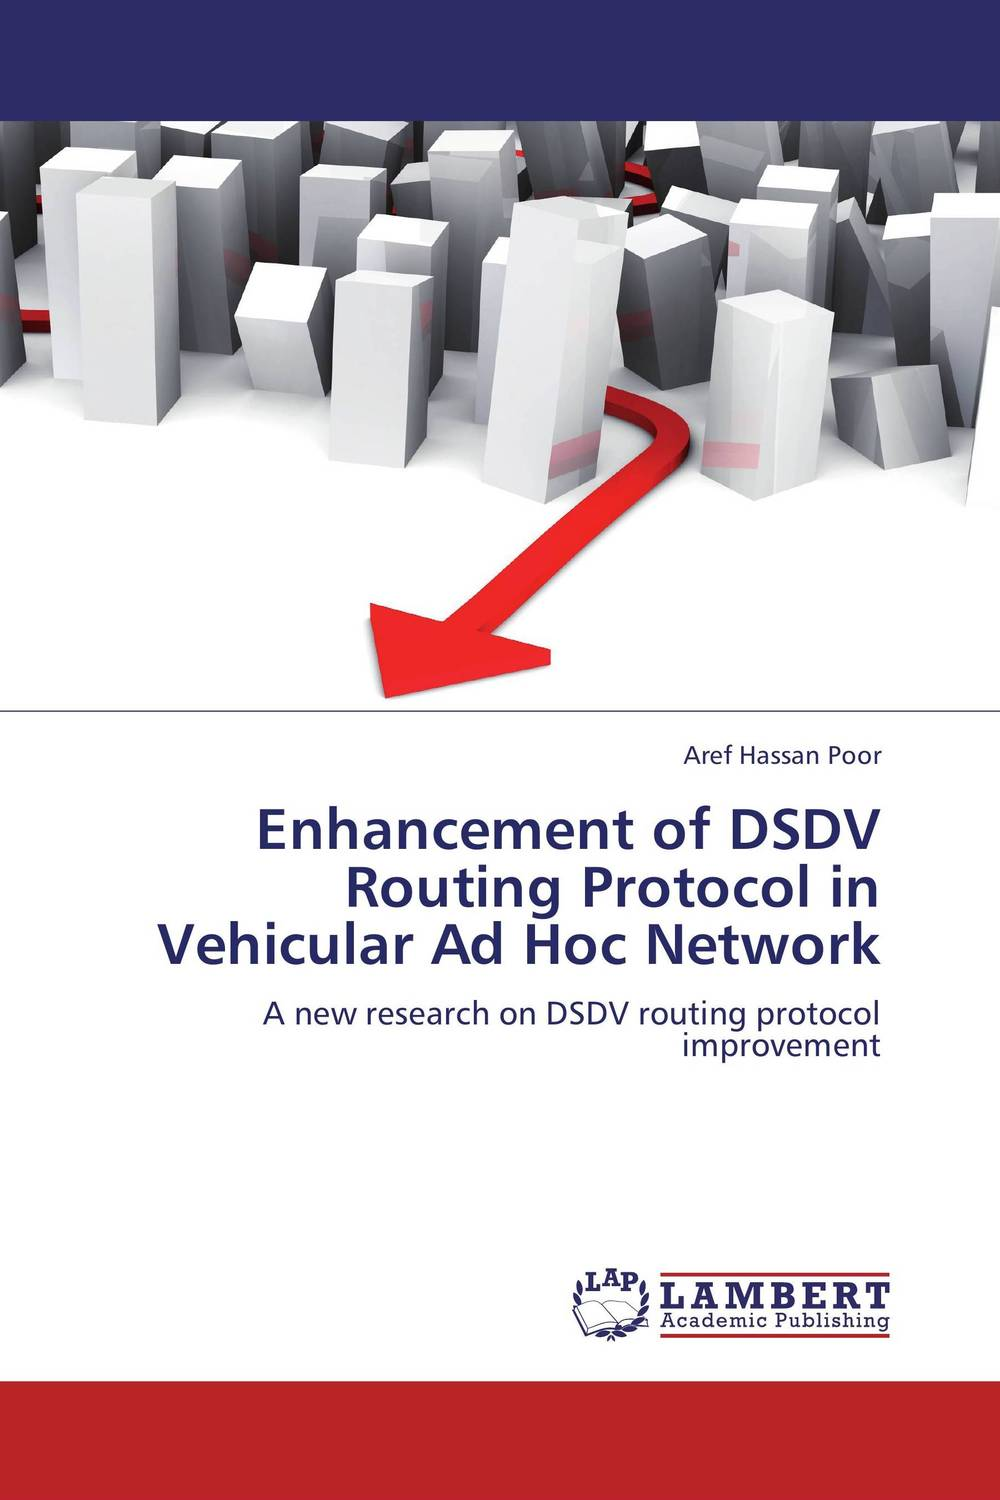 Enhancement of DSDV Routing Protocol in Vehicular Ad Hoc Network heena dhawan a heterogenous clustering protocol in wsn href leach protocol